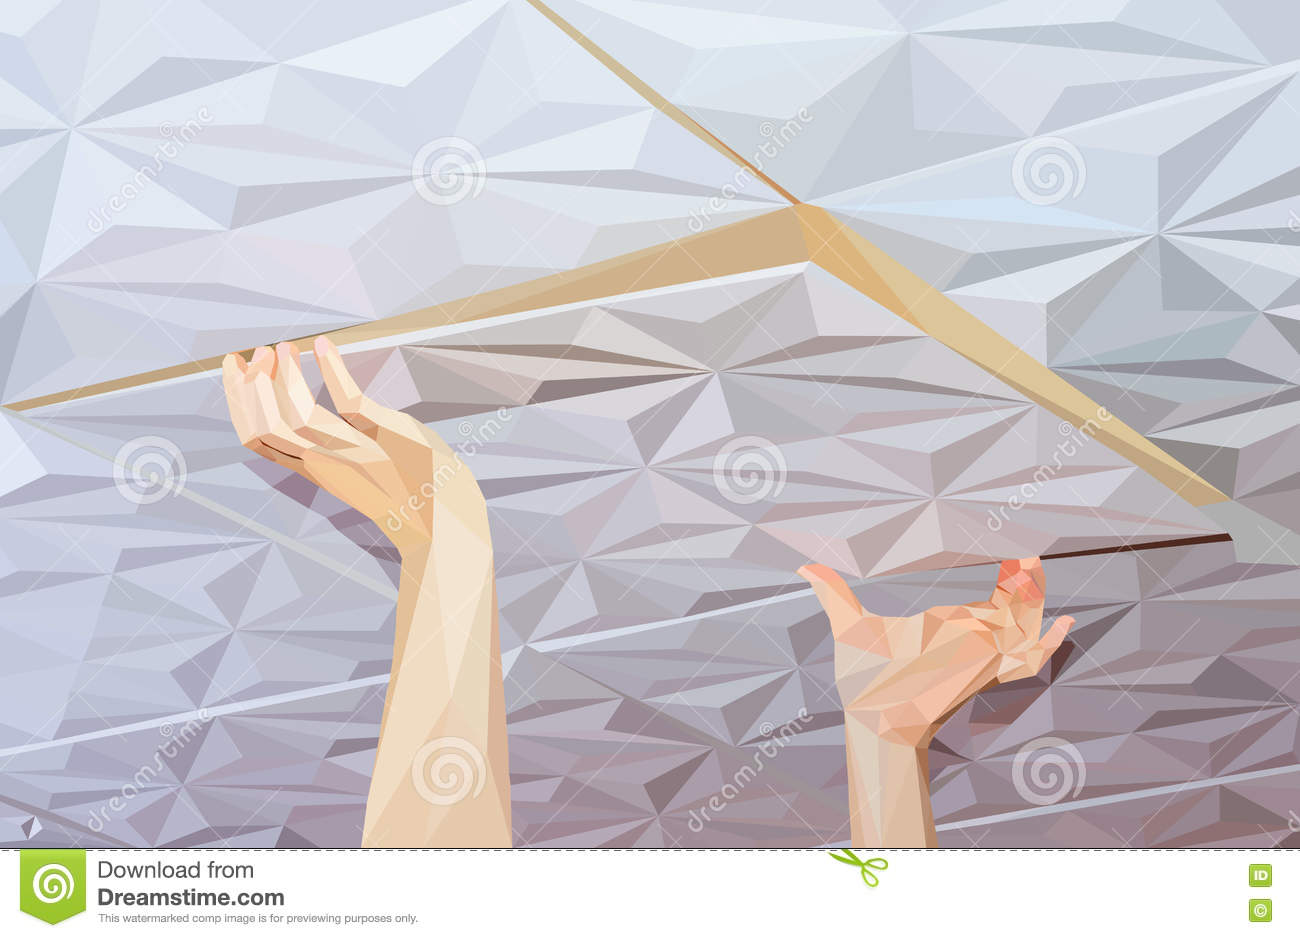 Installation Of Ceiling Tiles Made Of Polystyrene Stock Illustration